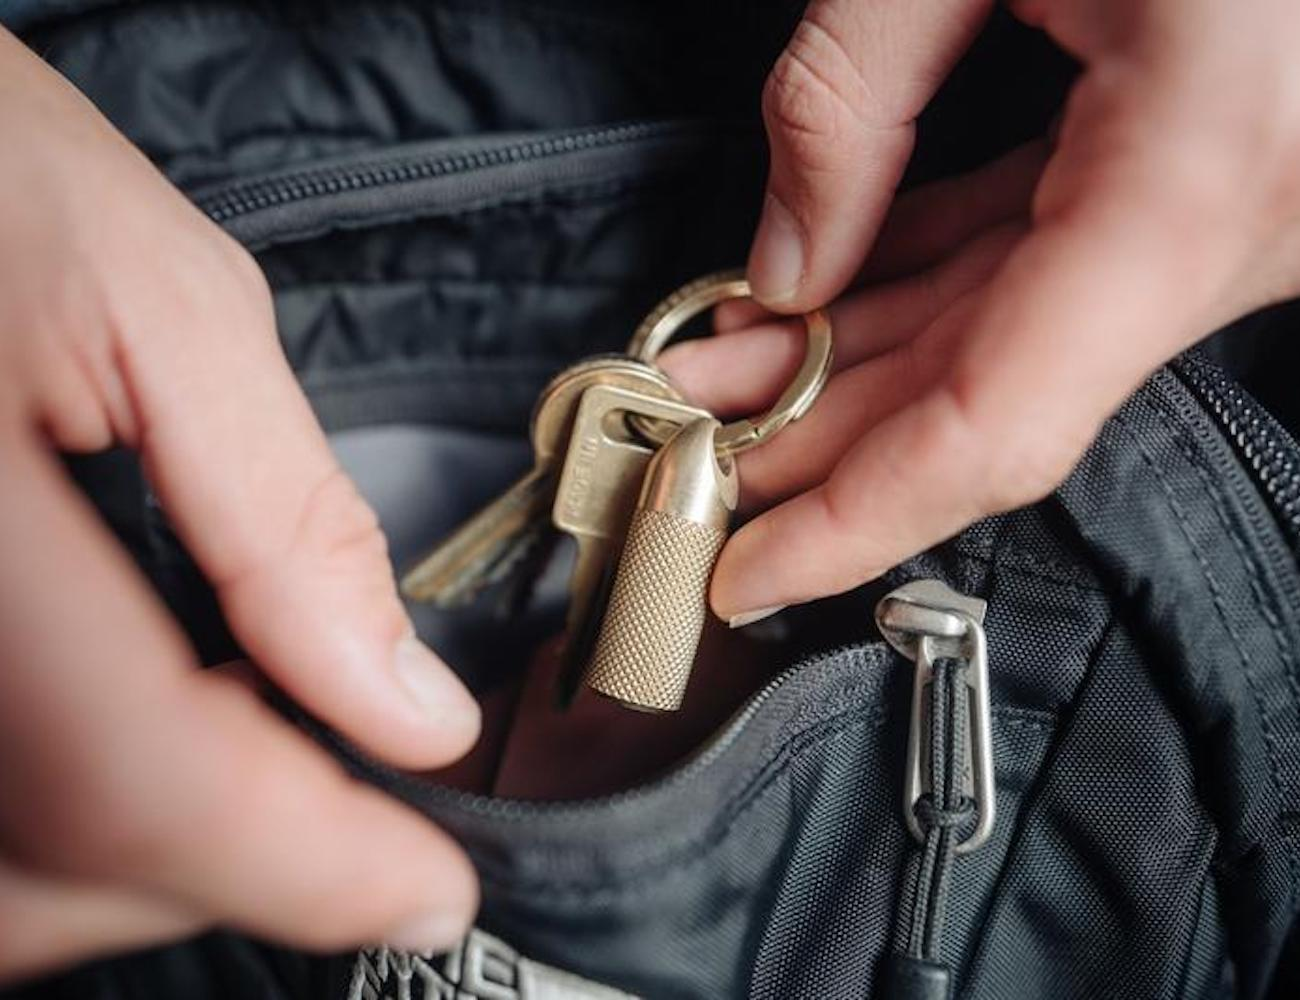 Wingback Key Cache EDC money stash gives you a cooler way to store your bills